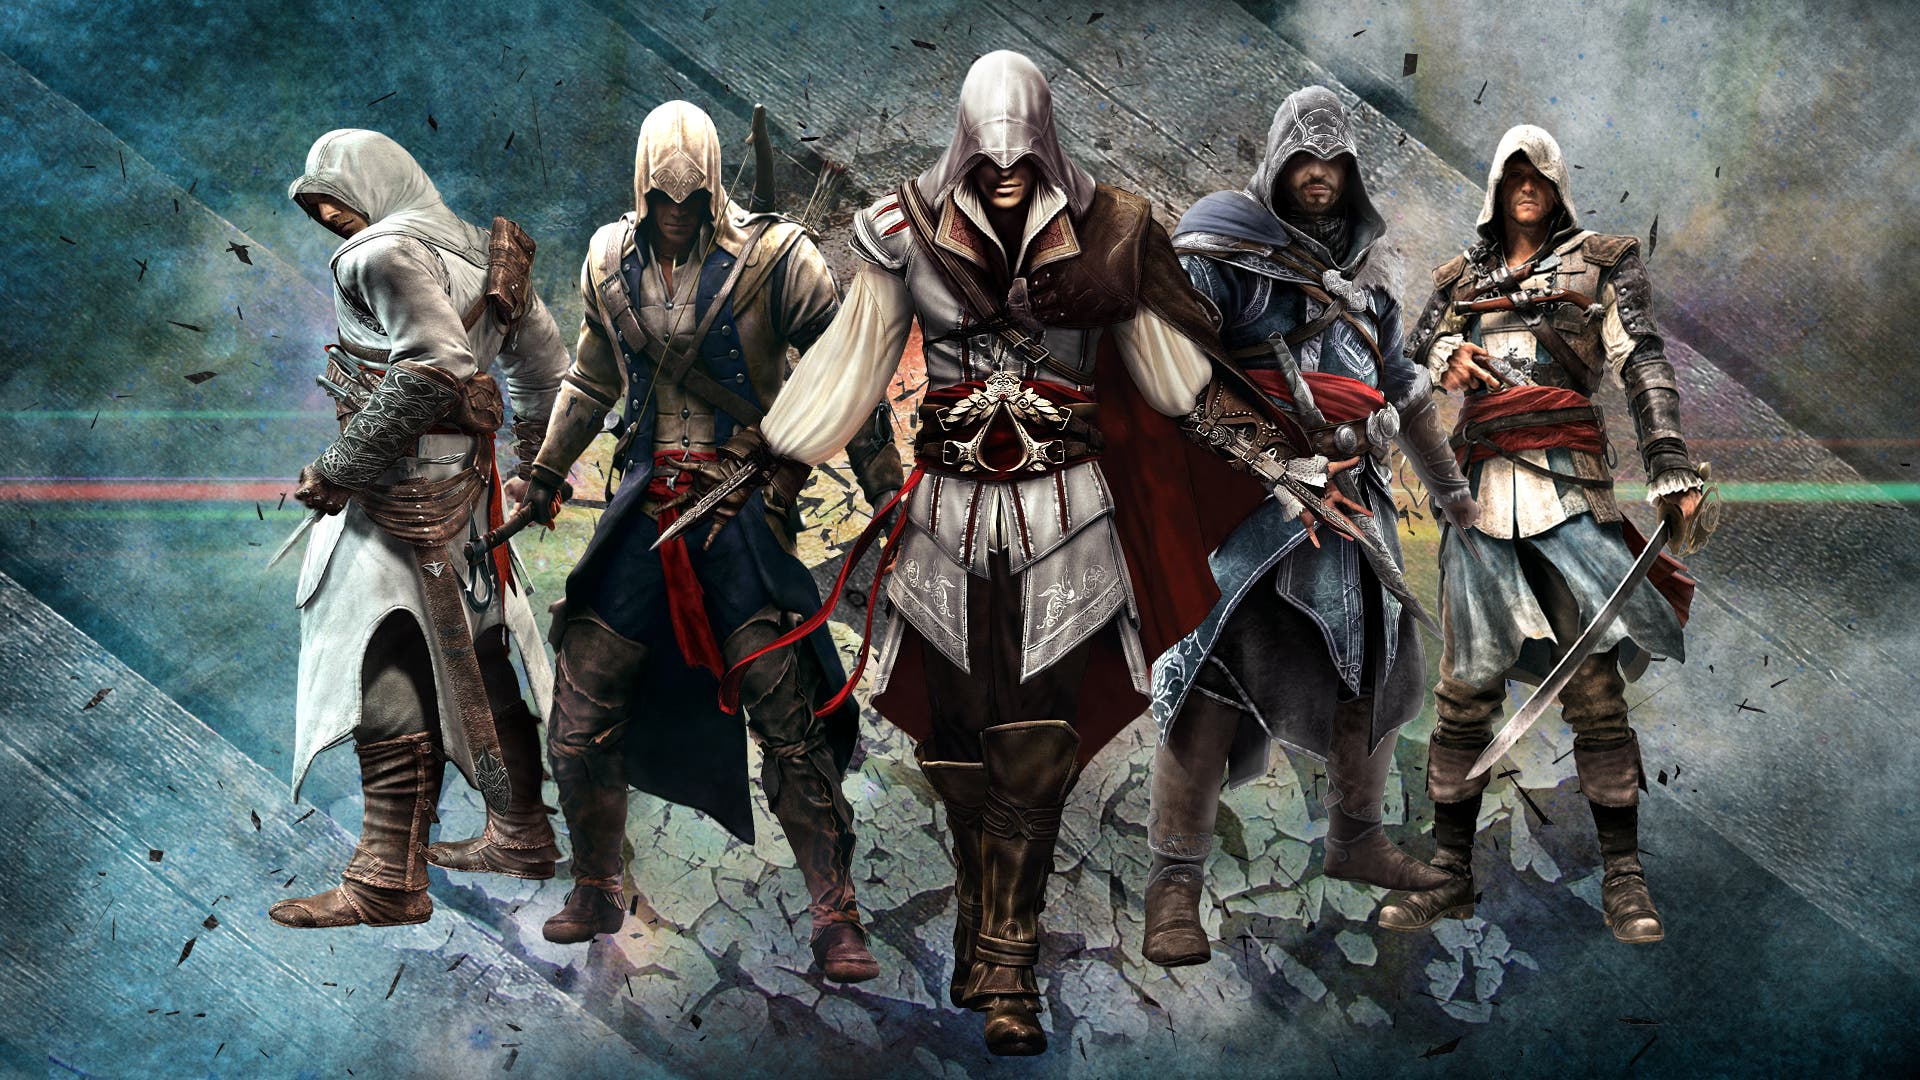 El director narrativo de Assassin's Creed abandona Ubisoft 2